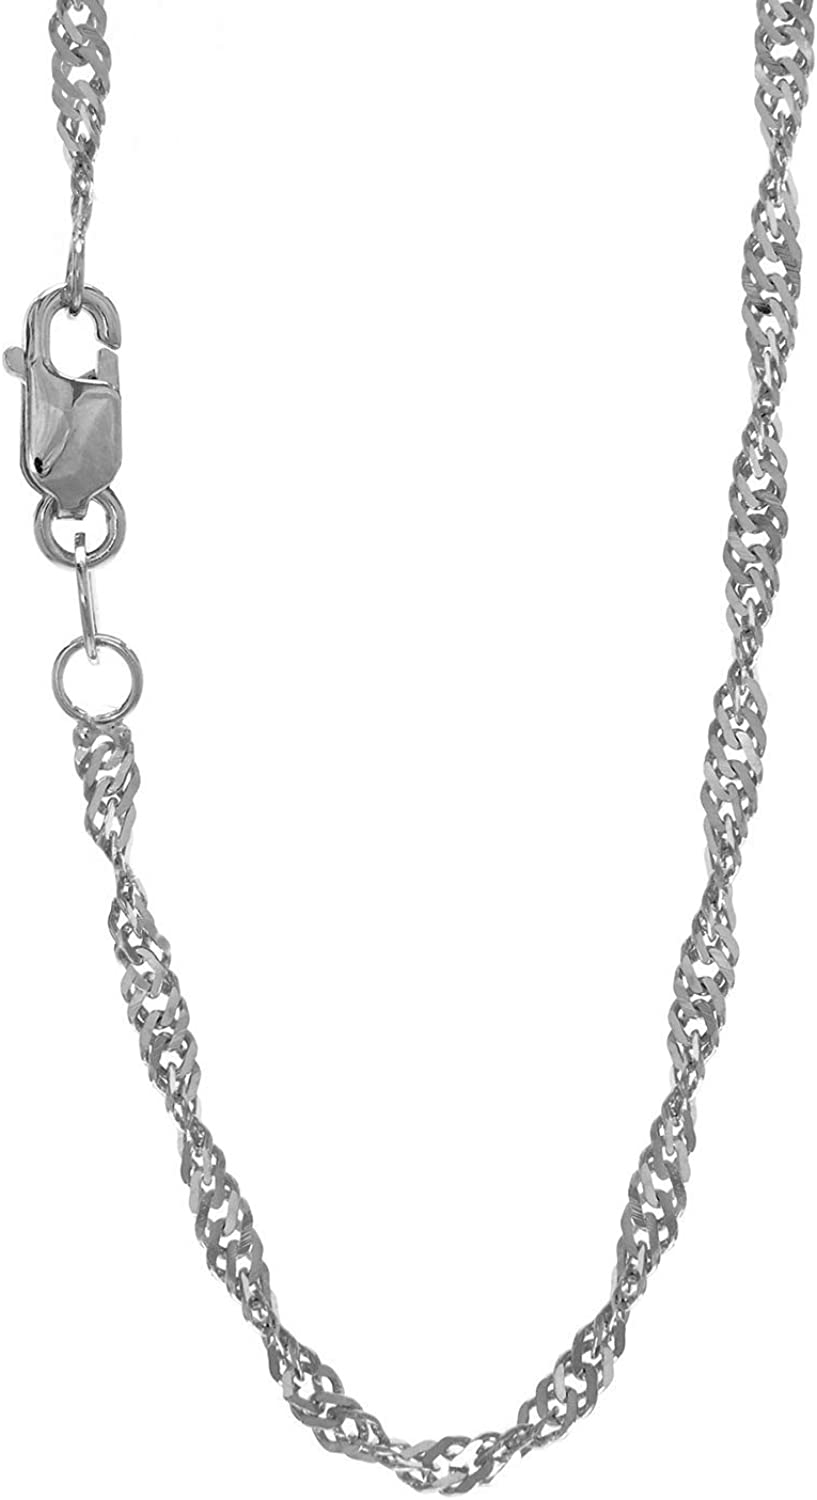 JewelStop 14k Solid Gold Yellow Or White 1.5 mm Singapore Chain Necklace 16